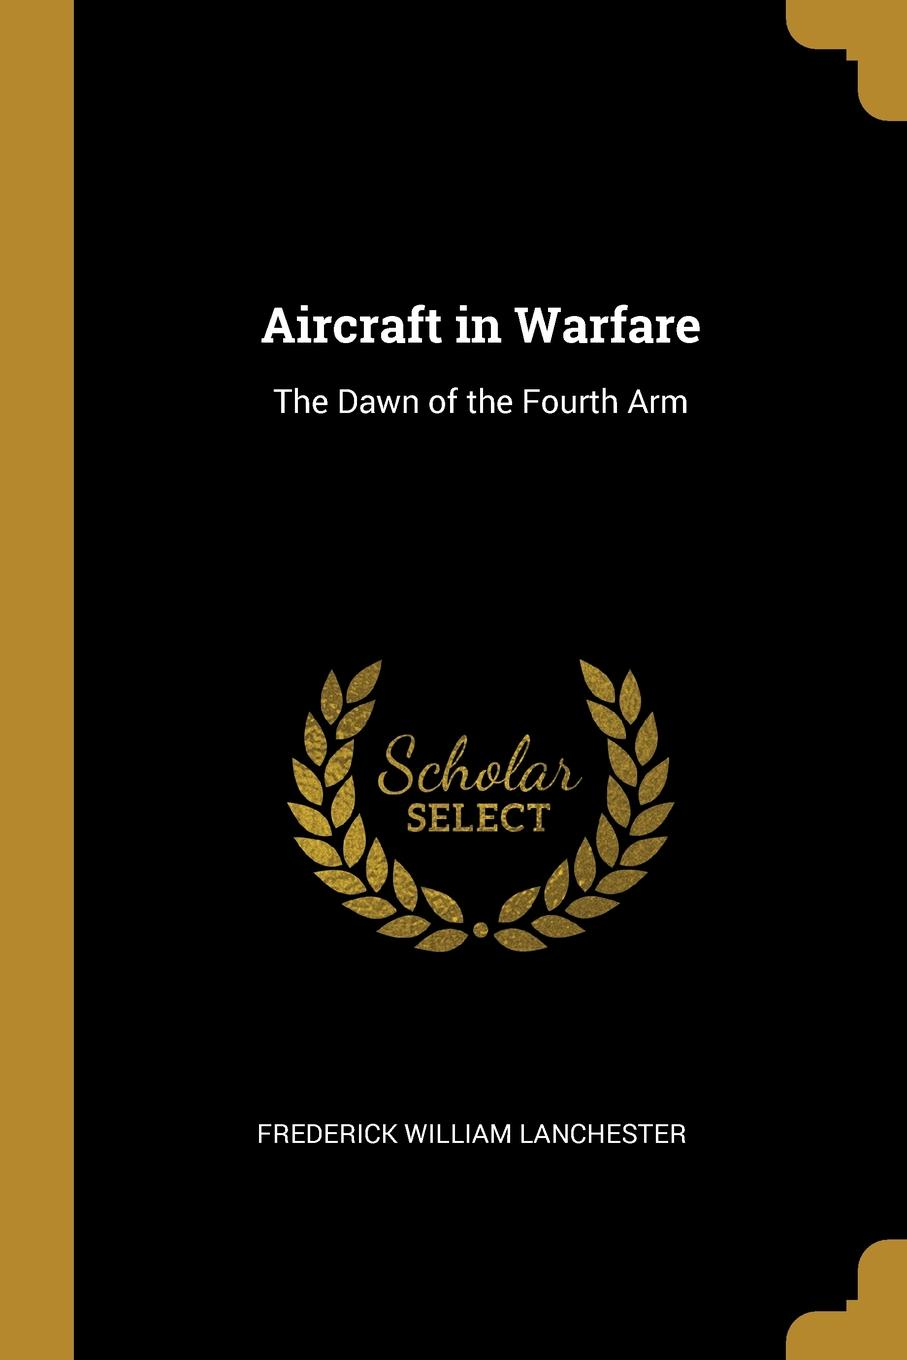 Frederick William Lanchester. Aircraft in Warfare. The Dawn of the Fourth Arm